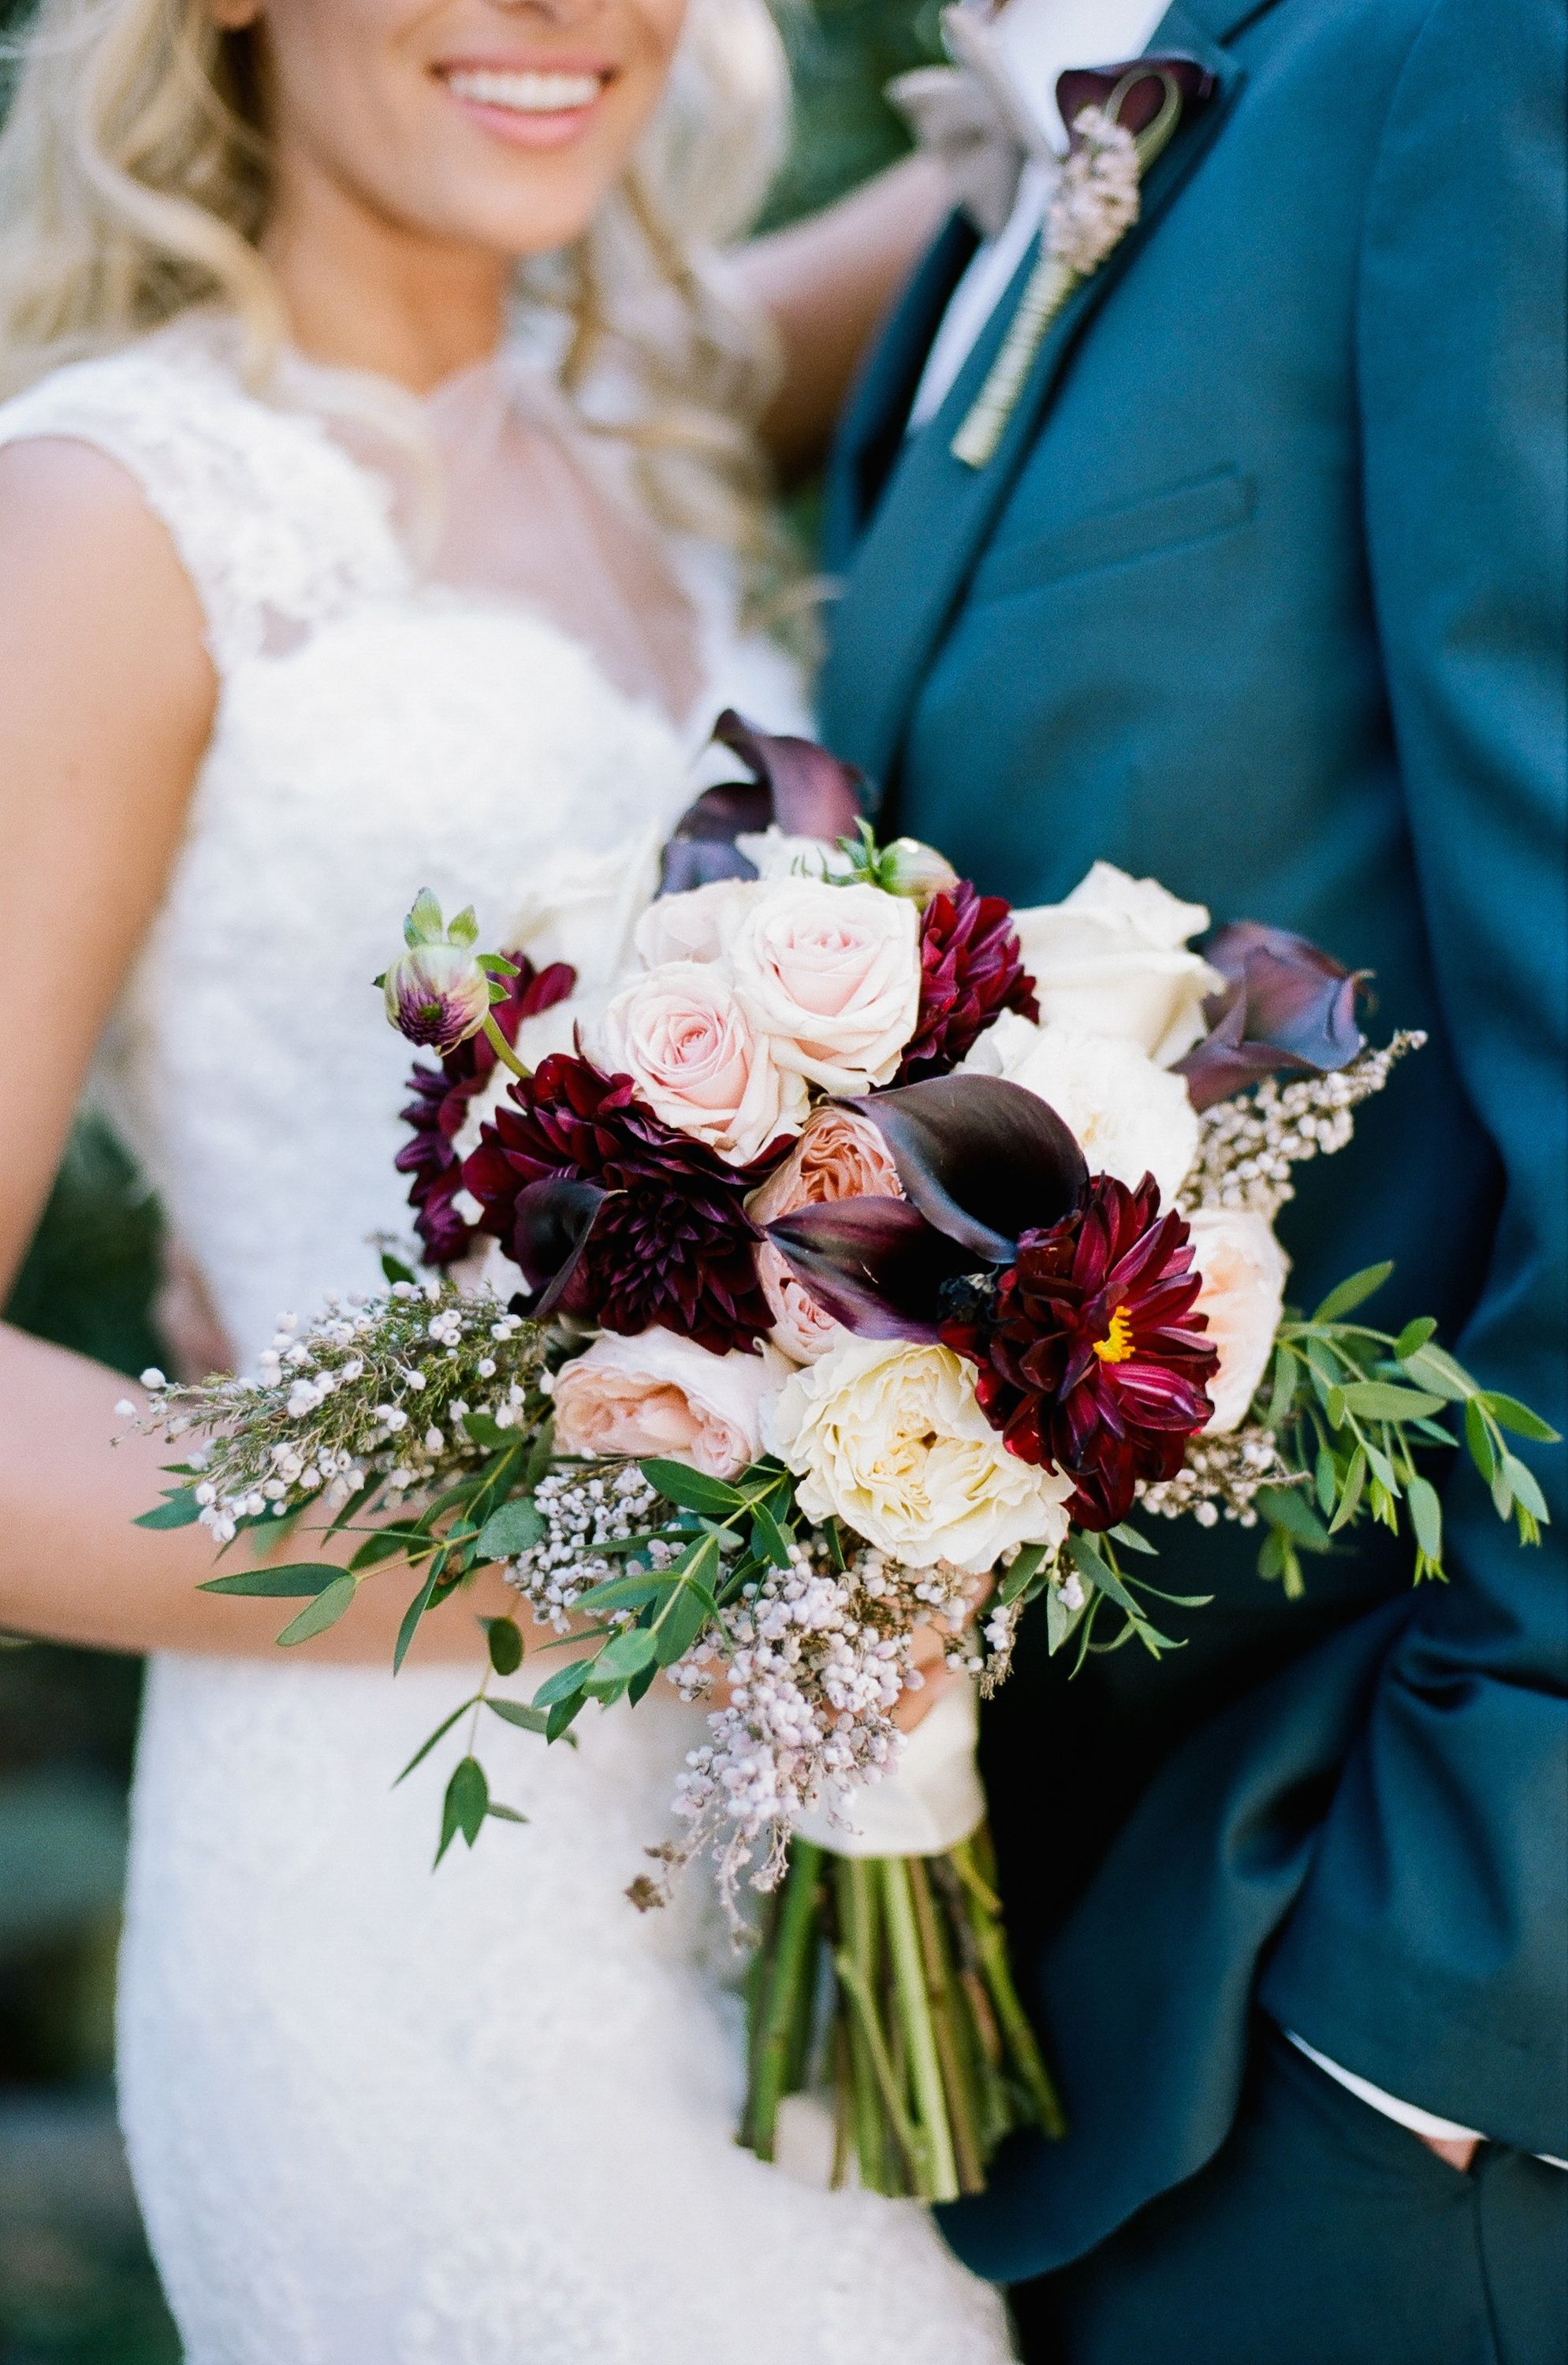 Fall Wedding Bouquets.25 Best Fall Wedding Flowers Wedding Bouquets And Centerpieces For